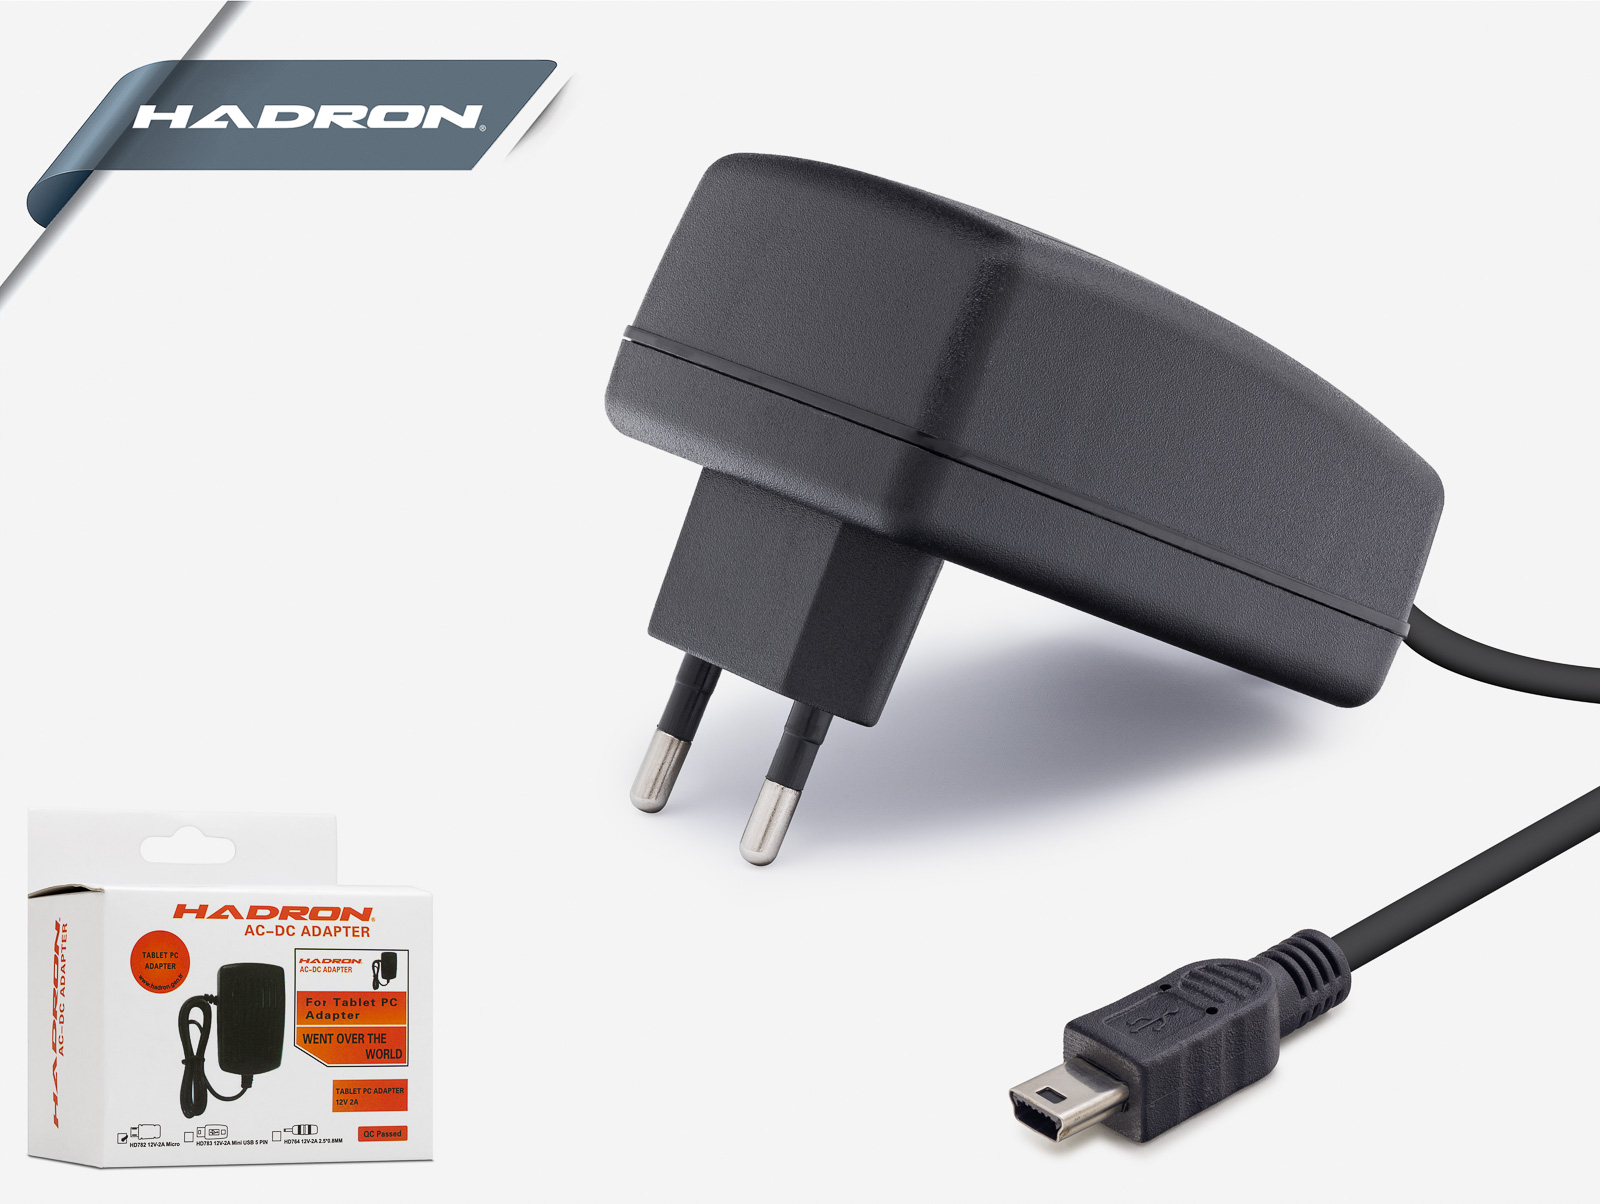 Hd782 Tablet Adaptörü 12V 2A Mıcro Usb